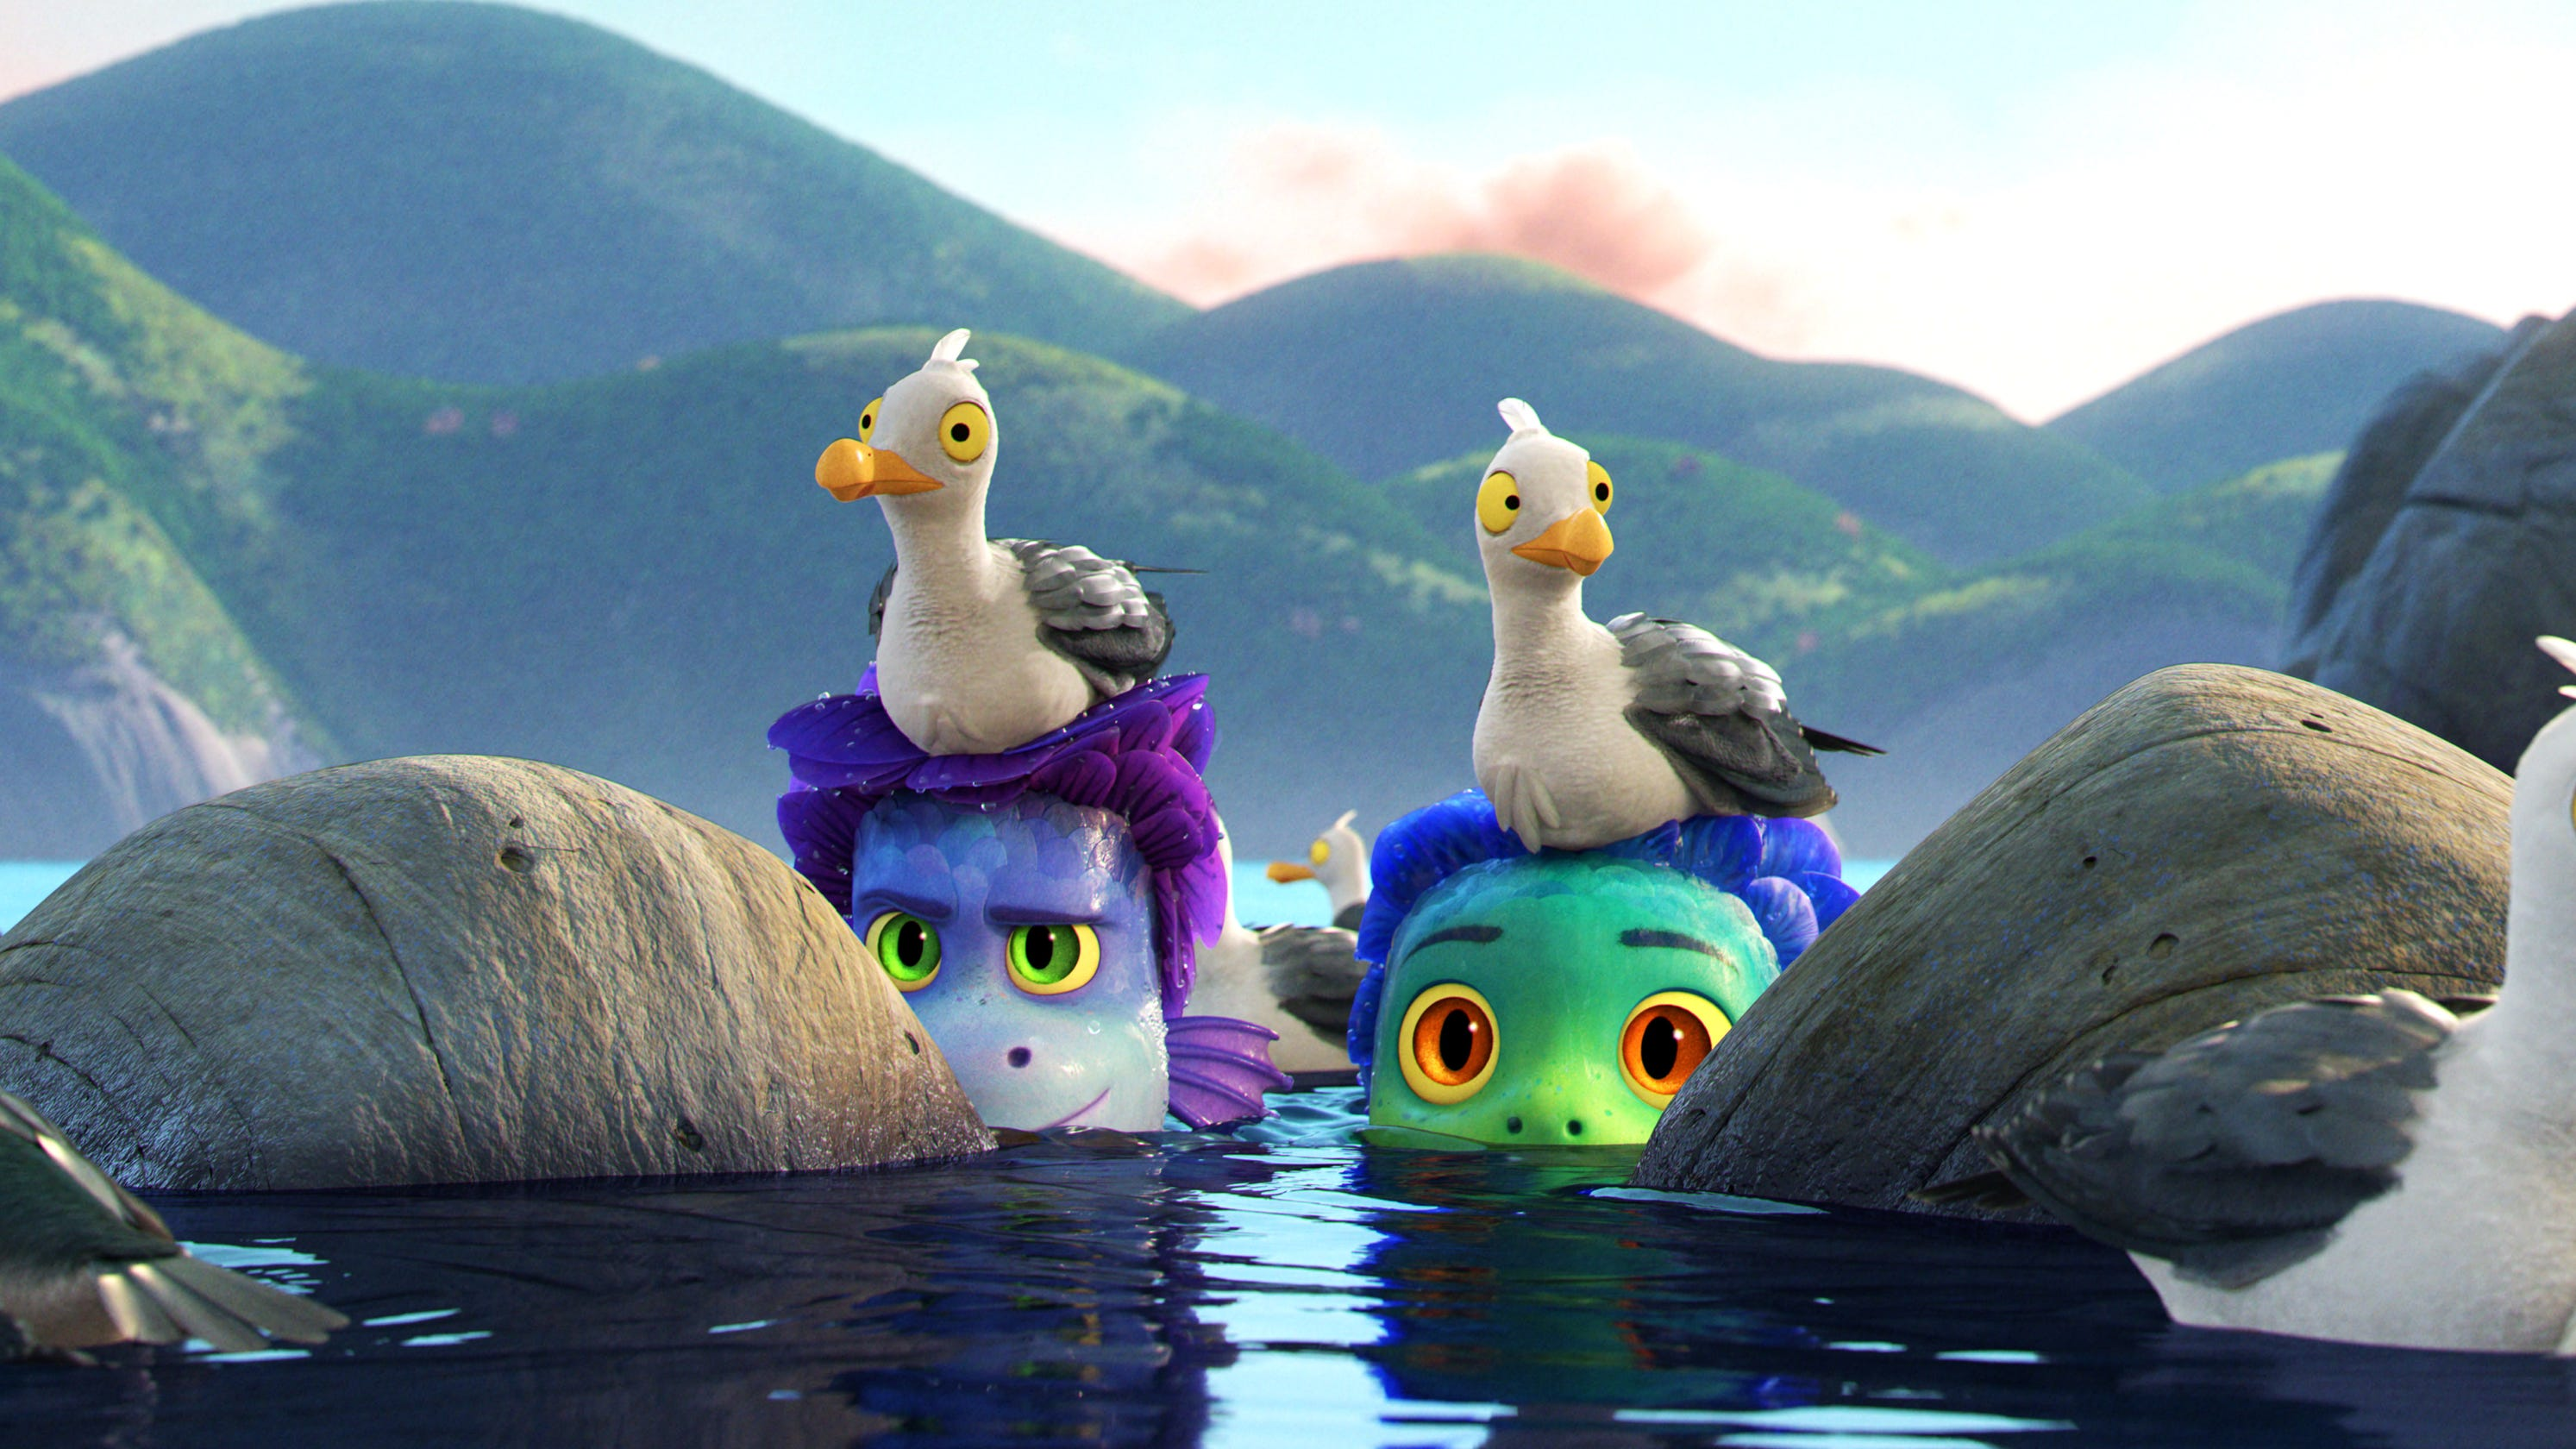 Review: Pixar's 'Luca' delivers an Italian-flavored Disney+ delight for kids of all ages